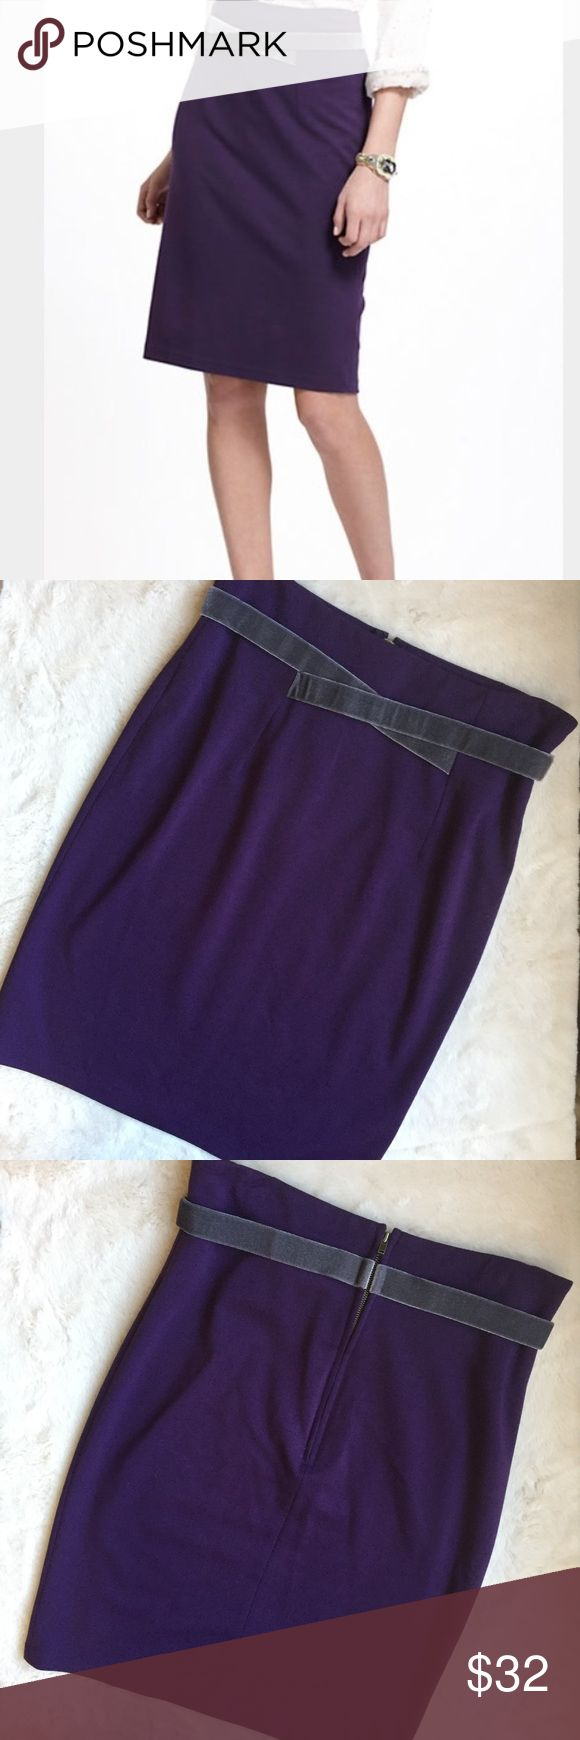 "Girls from Savoy Velvet Trim Purple Pencil Skirt Item: Girls from Savoy Purple Pencil Skirt with gray velvet trim & exposed back zipper Size: 4 Condition: Good pre-owned - barely worn - only visible wear is small mark by waist (see pics)  Measured lying flat: Waist: approx 14.75/15"" Length: approx 23"" Anthropologie Skirts Pencil"